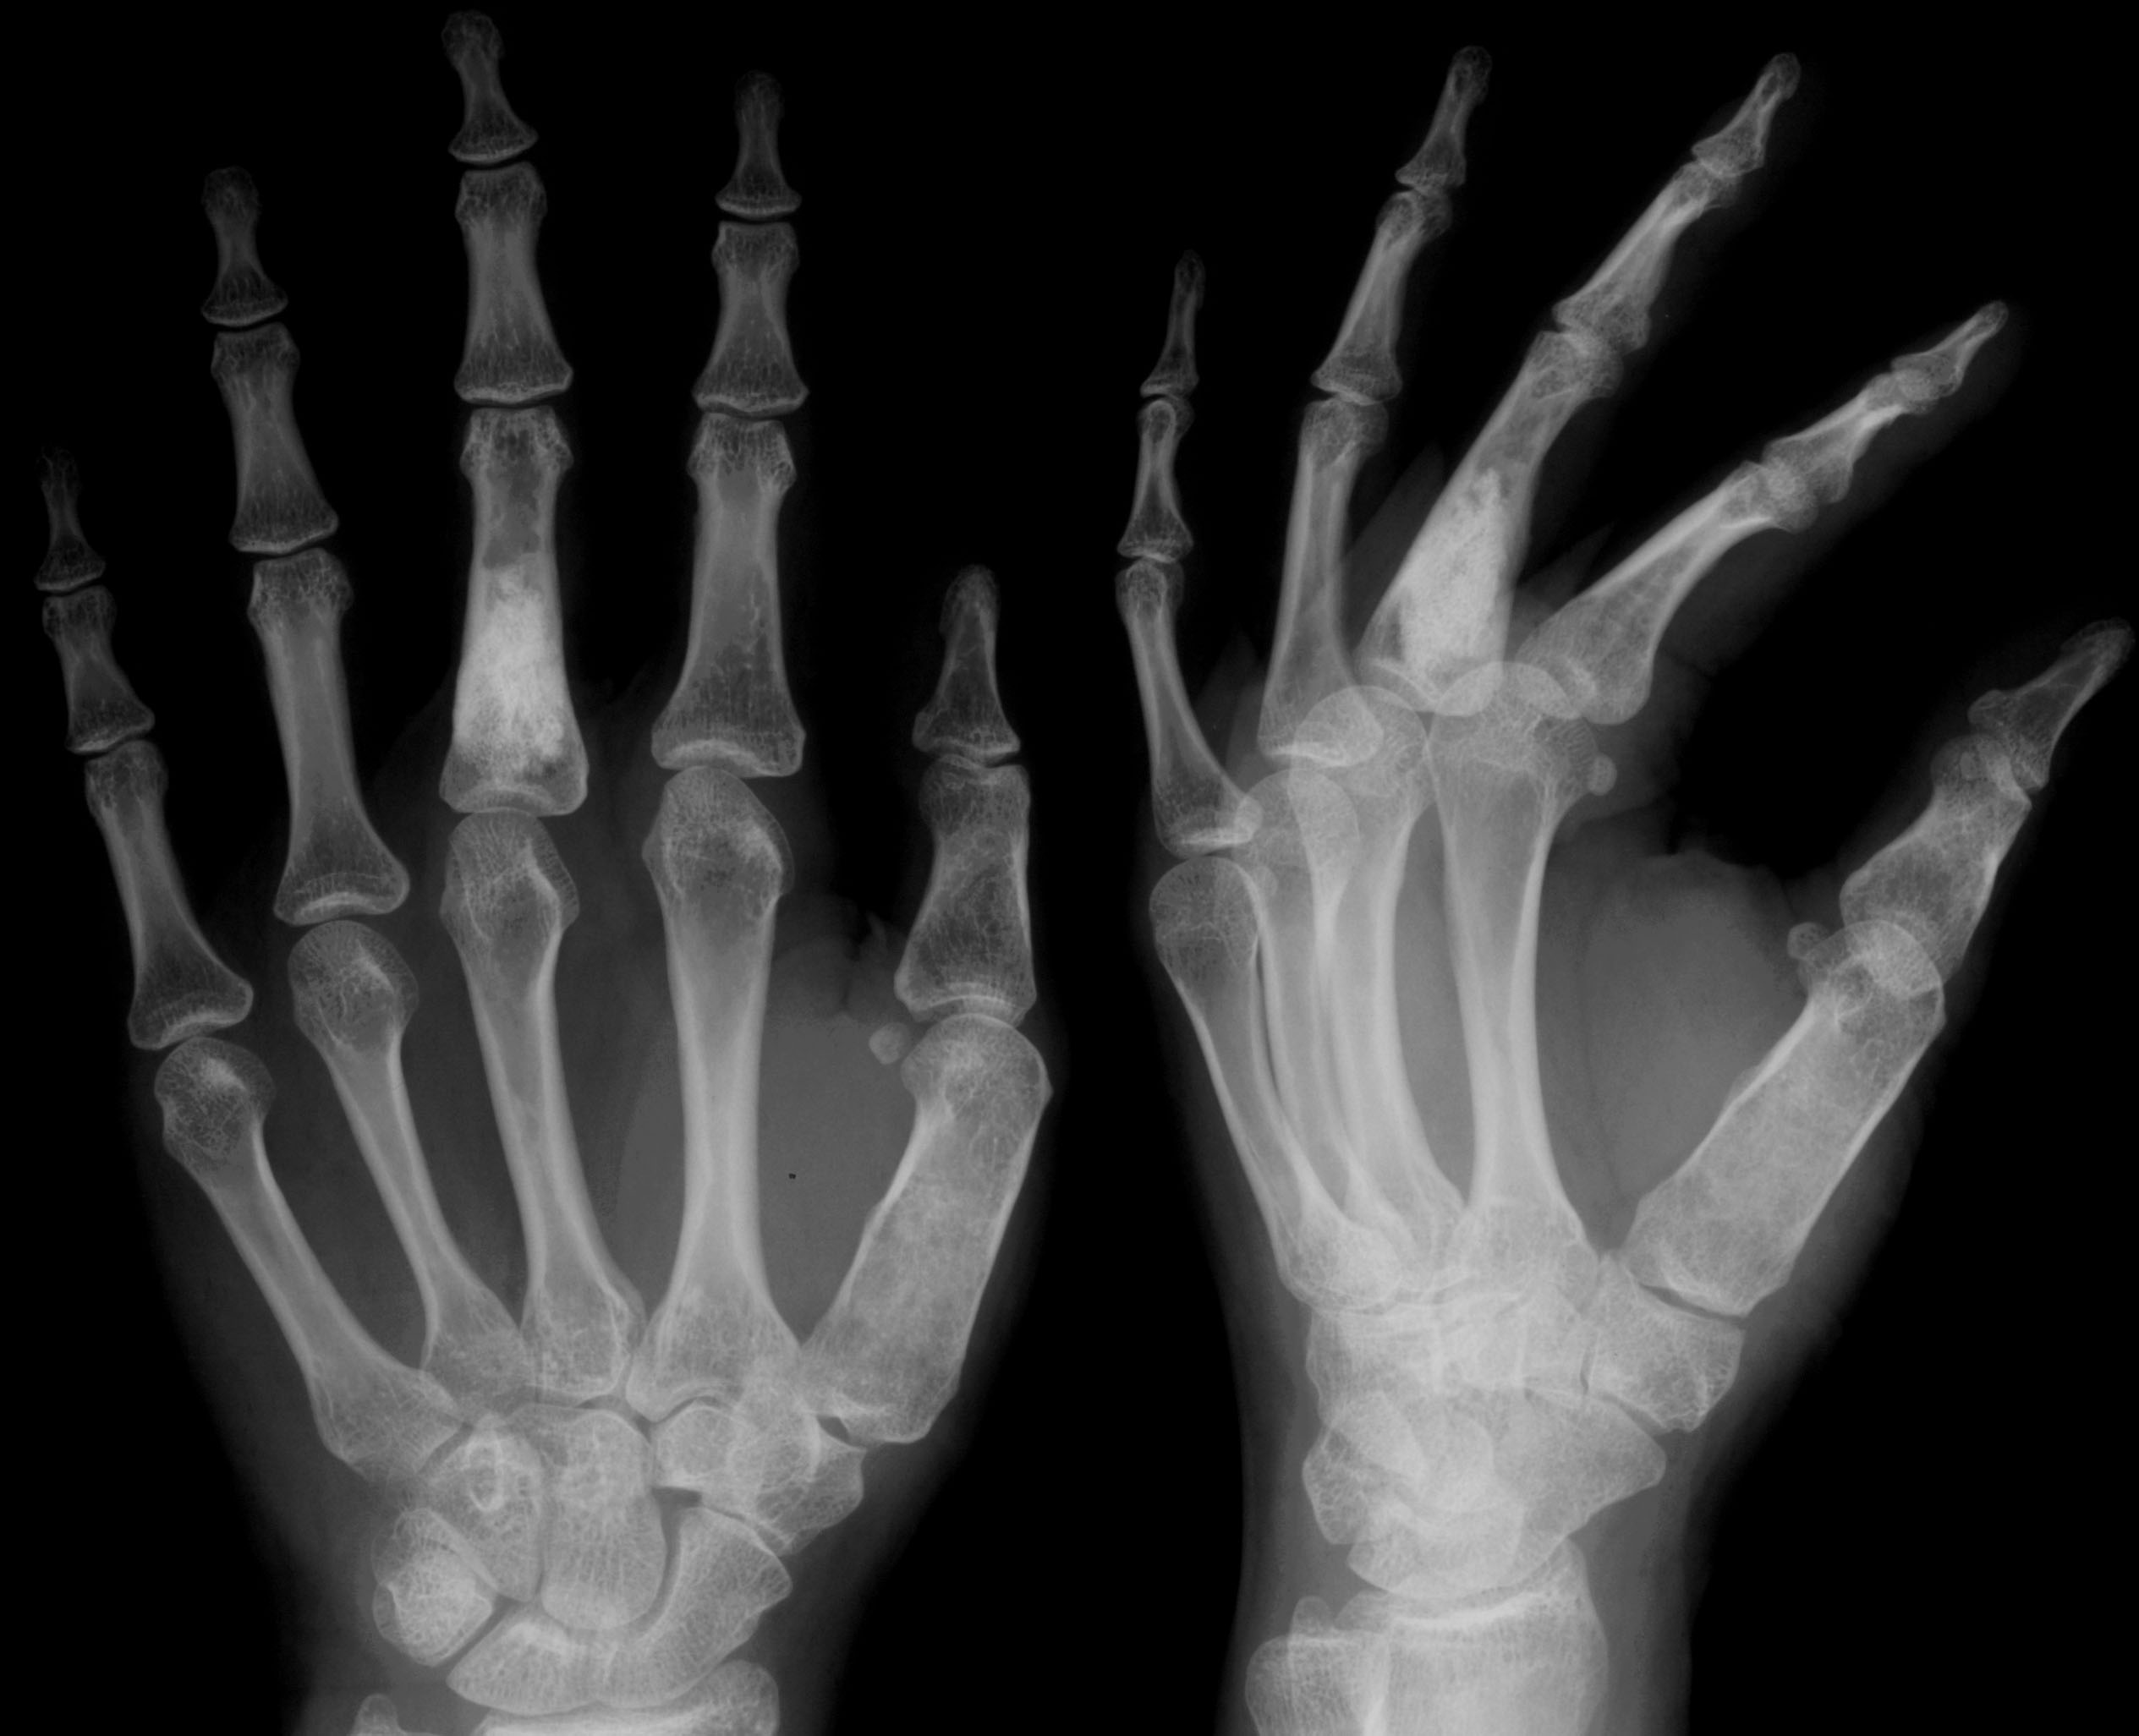 Can Cracking Knuckles Cause Food Contamination